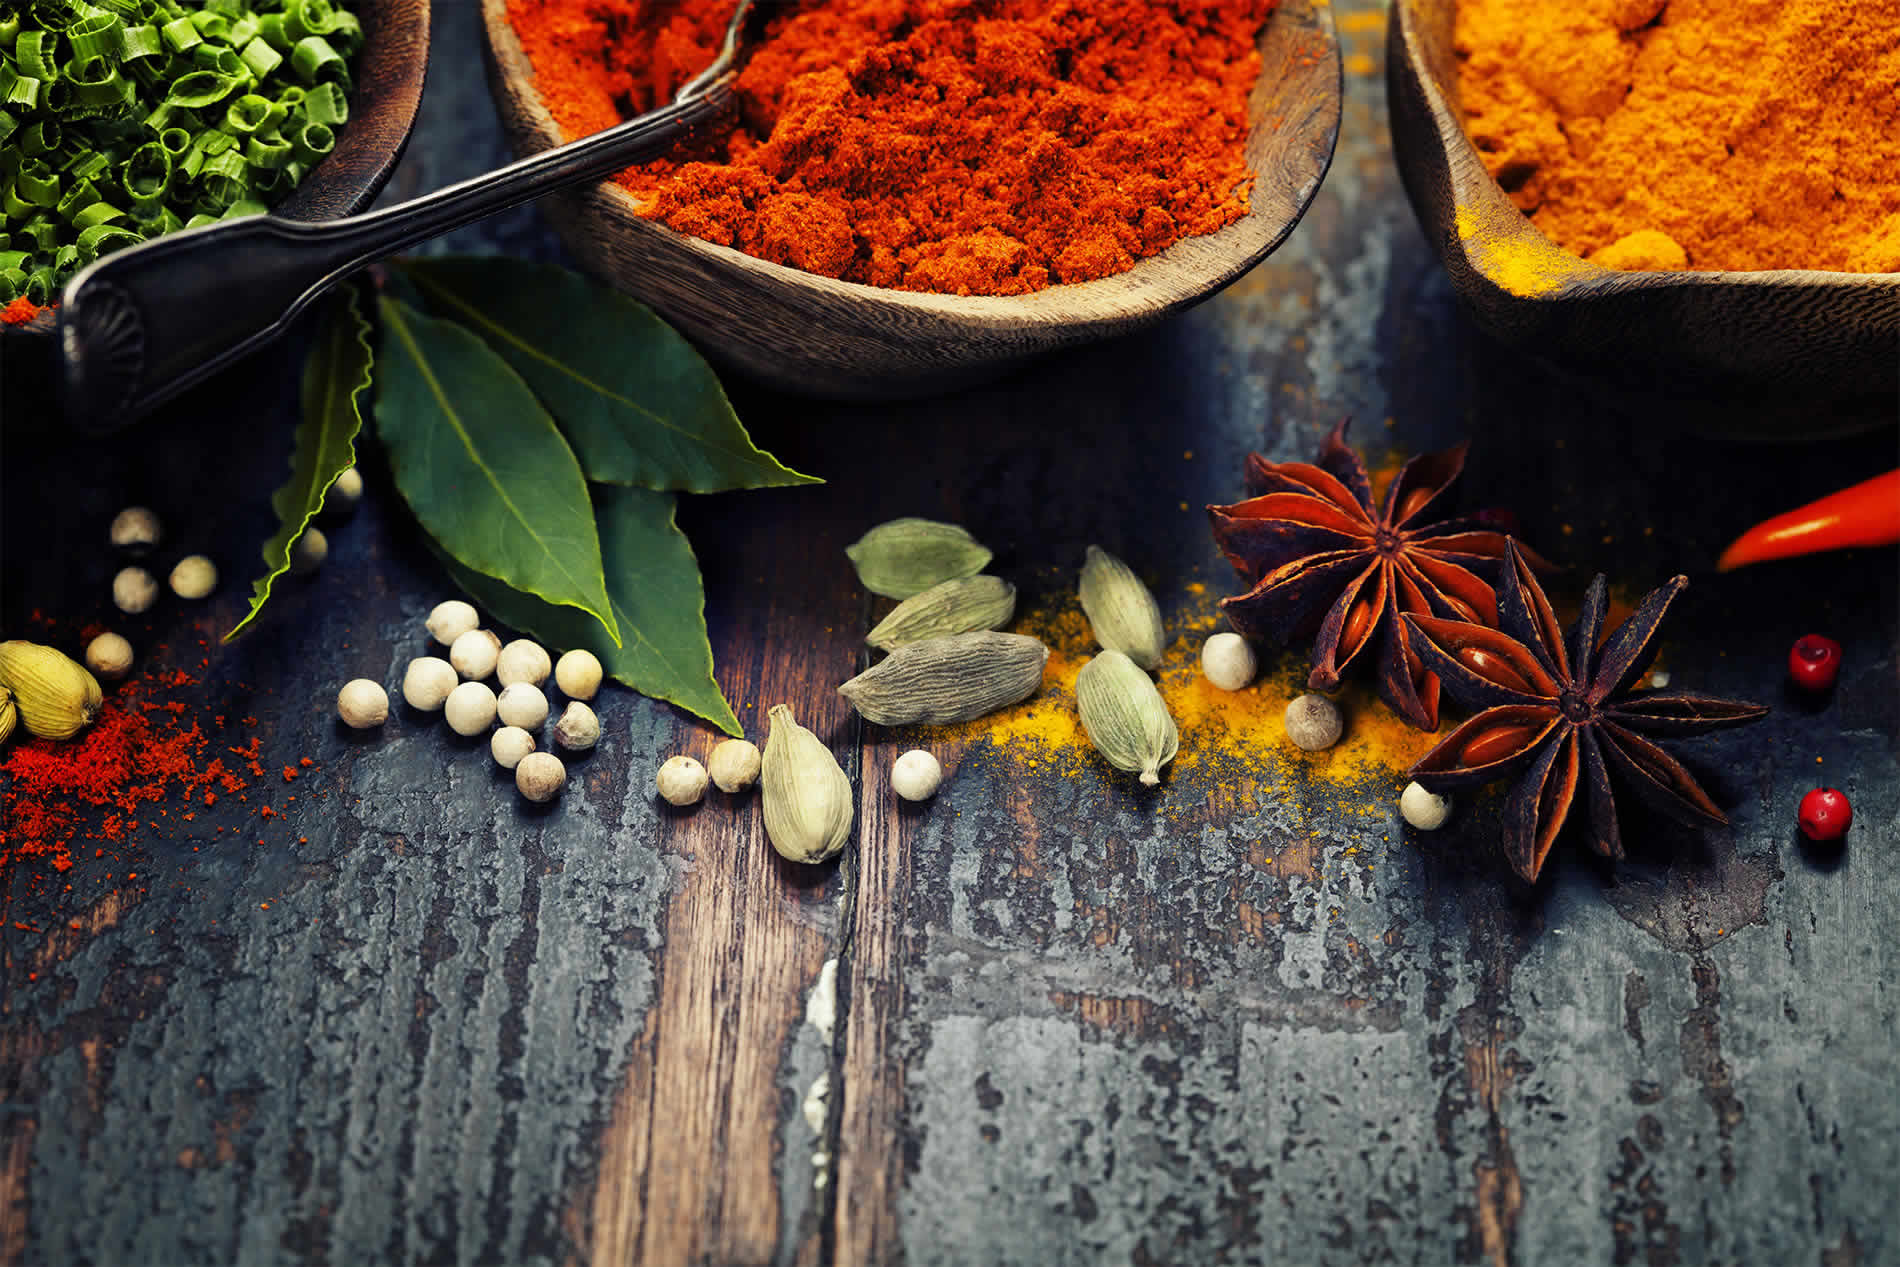 Section 3 background image - spices